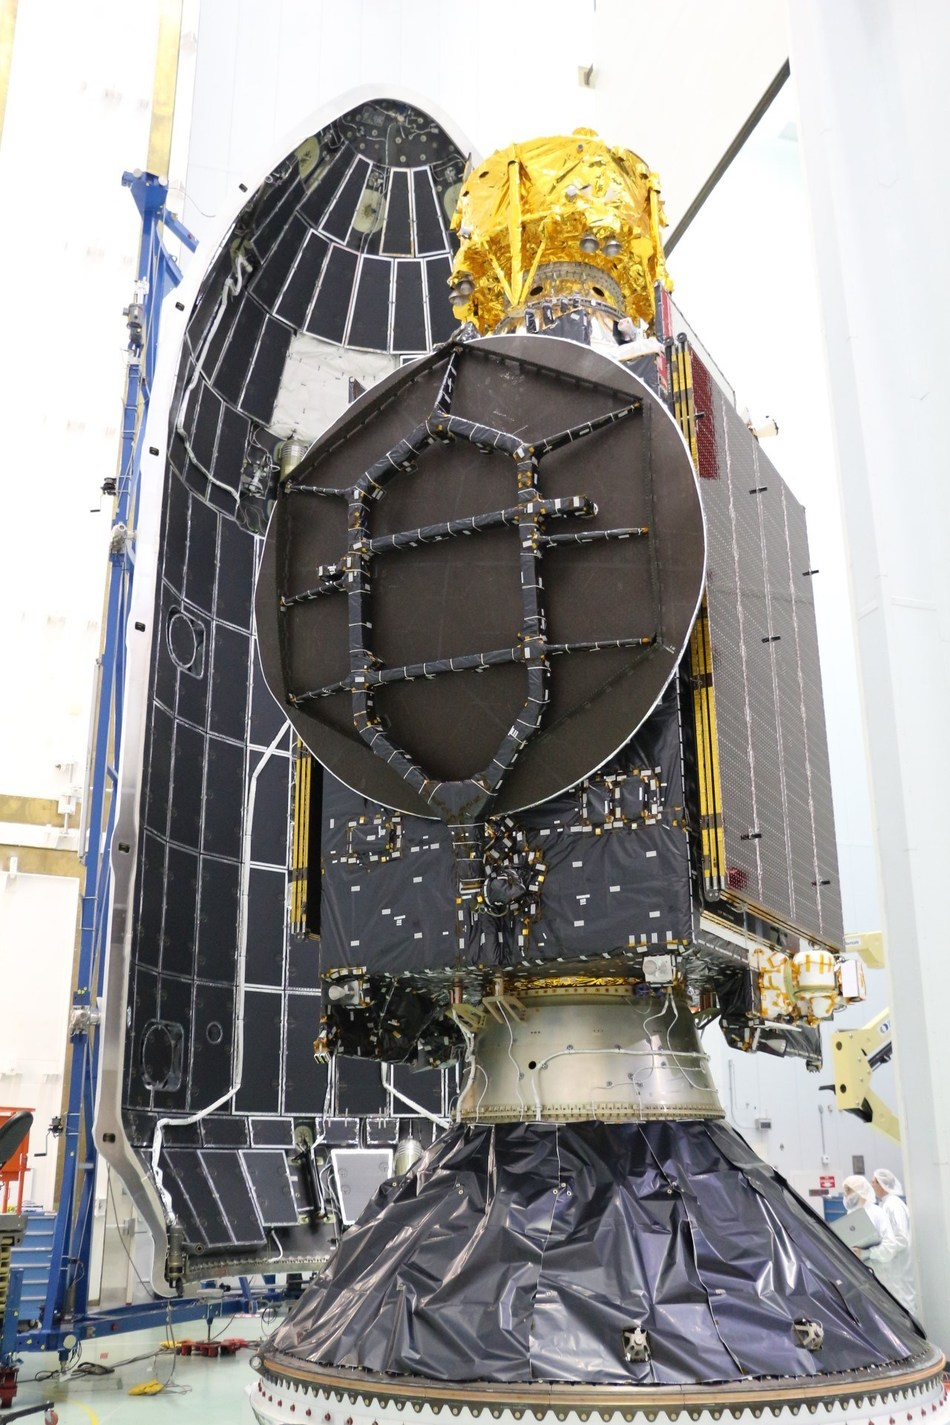 The SSL-built Nusantara Satu communications satellite is performing according to plan. Image courtesy of SSL. (CNW Group/Maxar Technologies Ltd.)